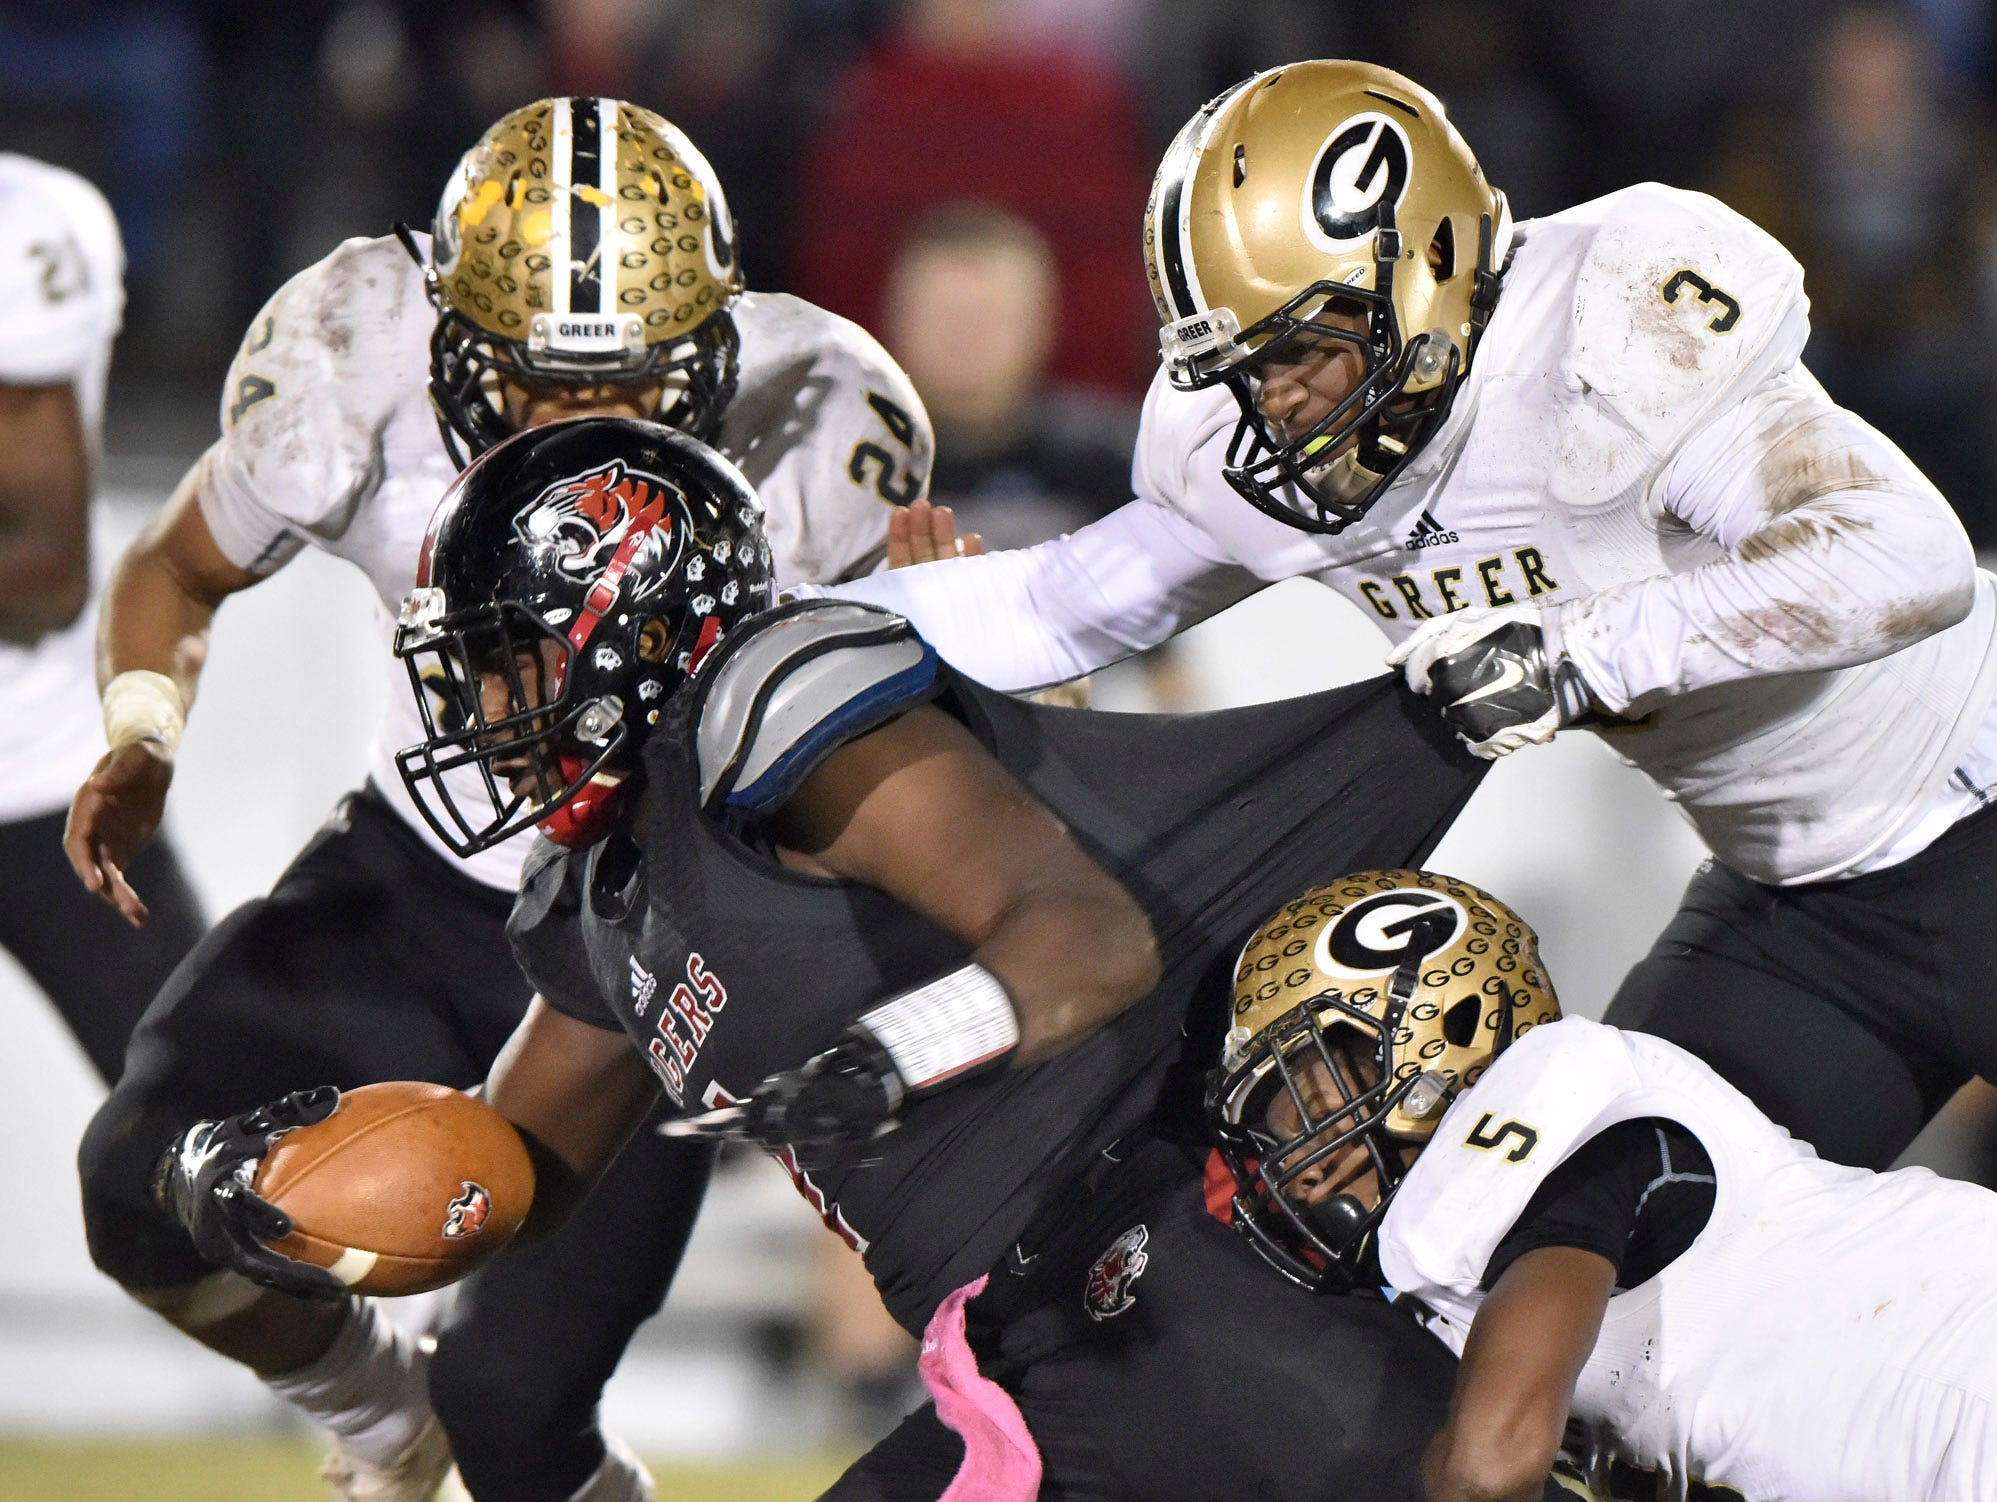 Blue Ridge's Vonta Jenkins (1) is caught by Greer's Quantavious Cohen (3), Troy Pride (5), and Adrian McGee (24).